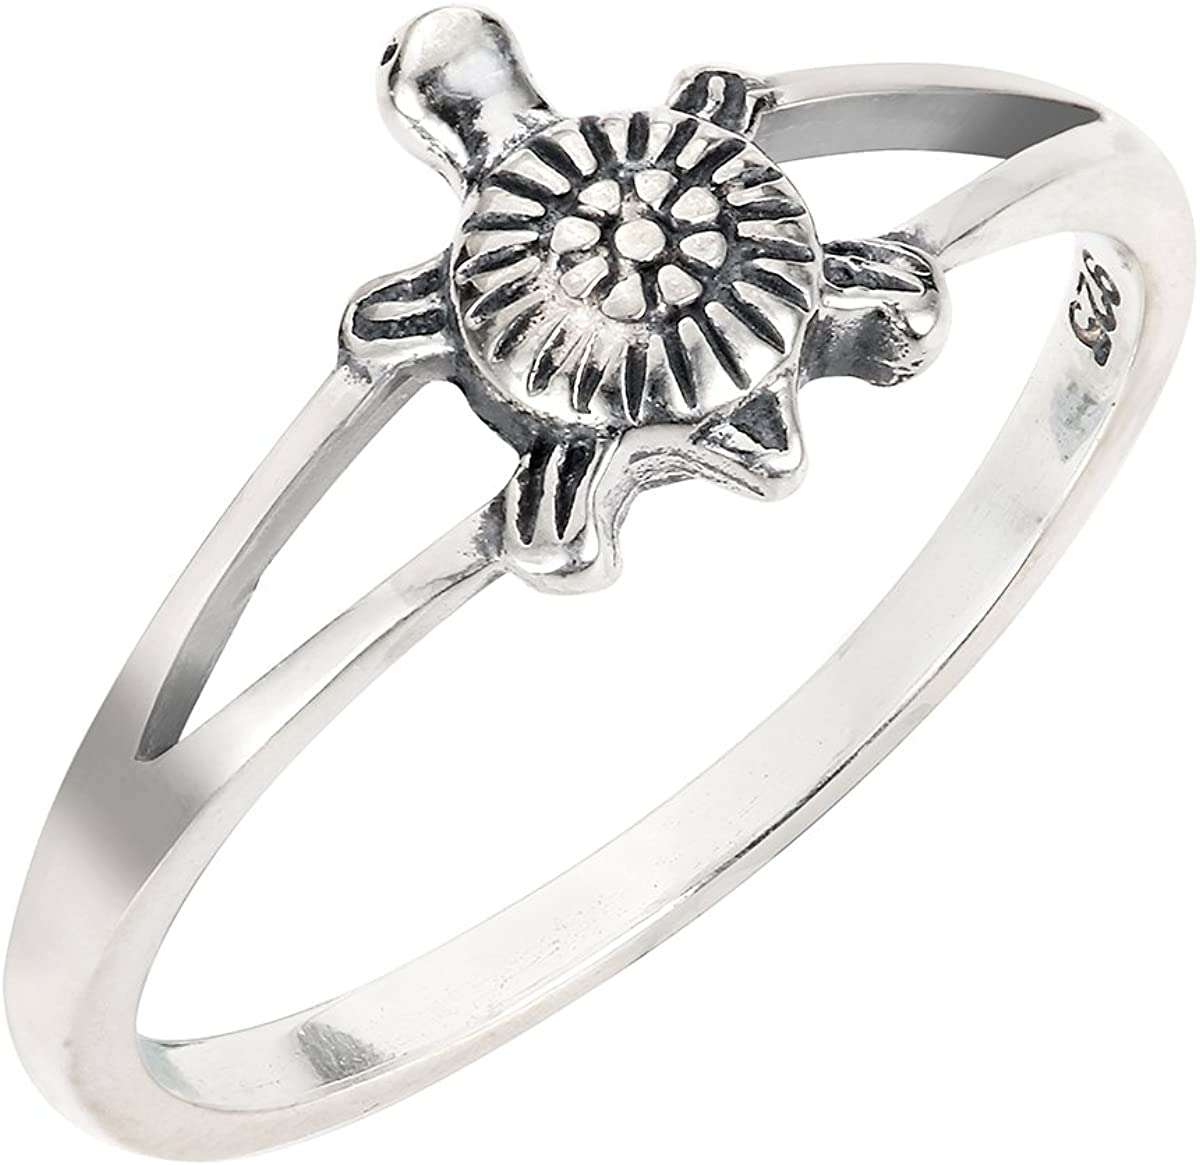 CloseoutWarehouse Sterling Silver Sea Turtle Ring Honu Comes in Over item Ranking TOP10 handling ☆